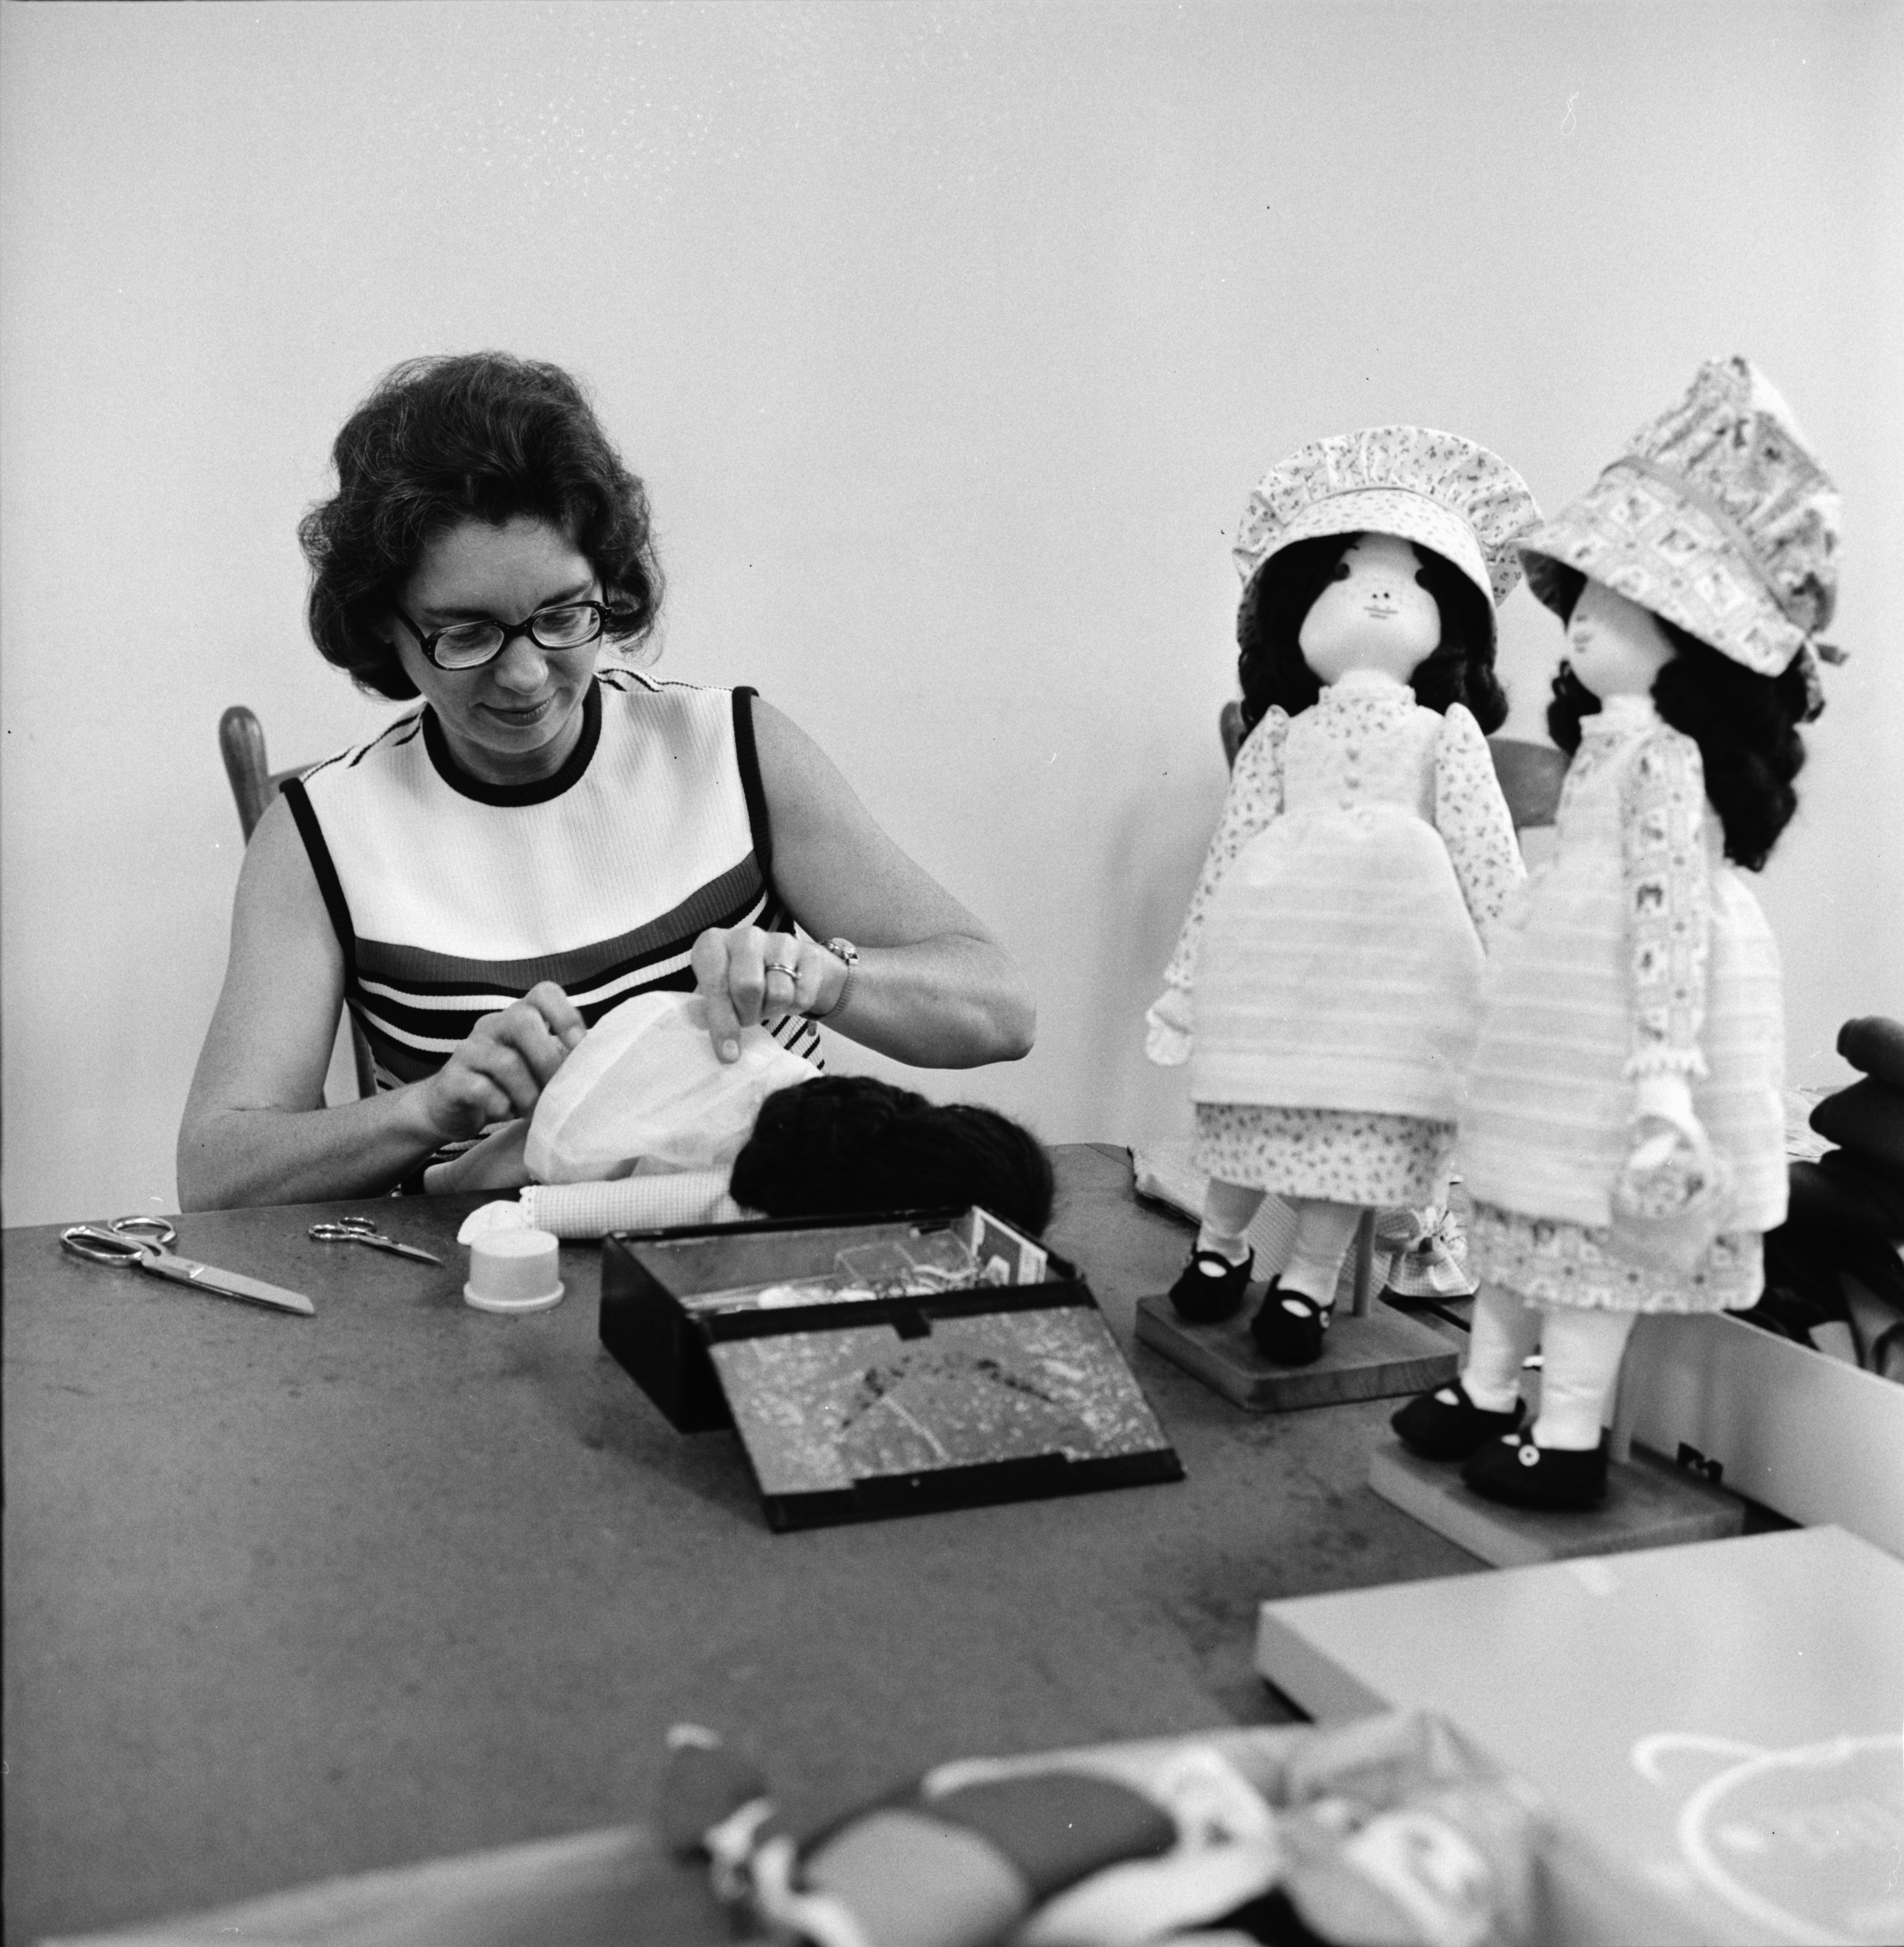 Bethlehem United Church of Christ Bazaar Preparations, October 1973 image